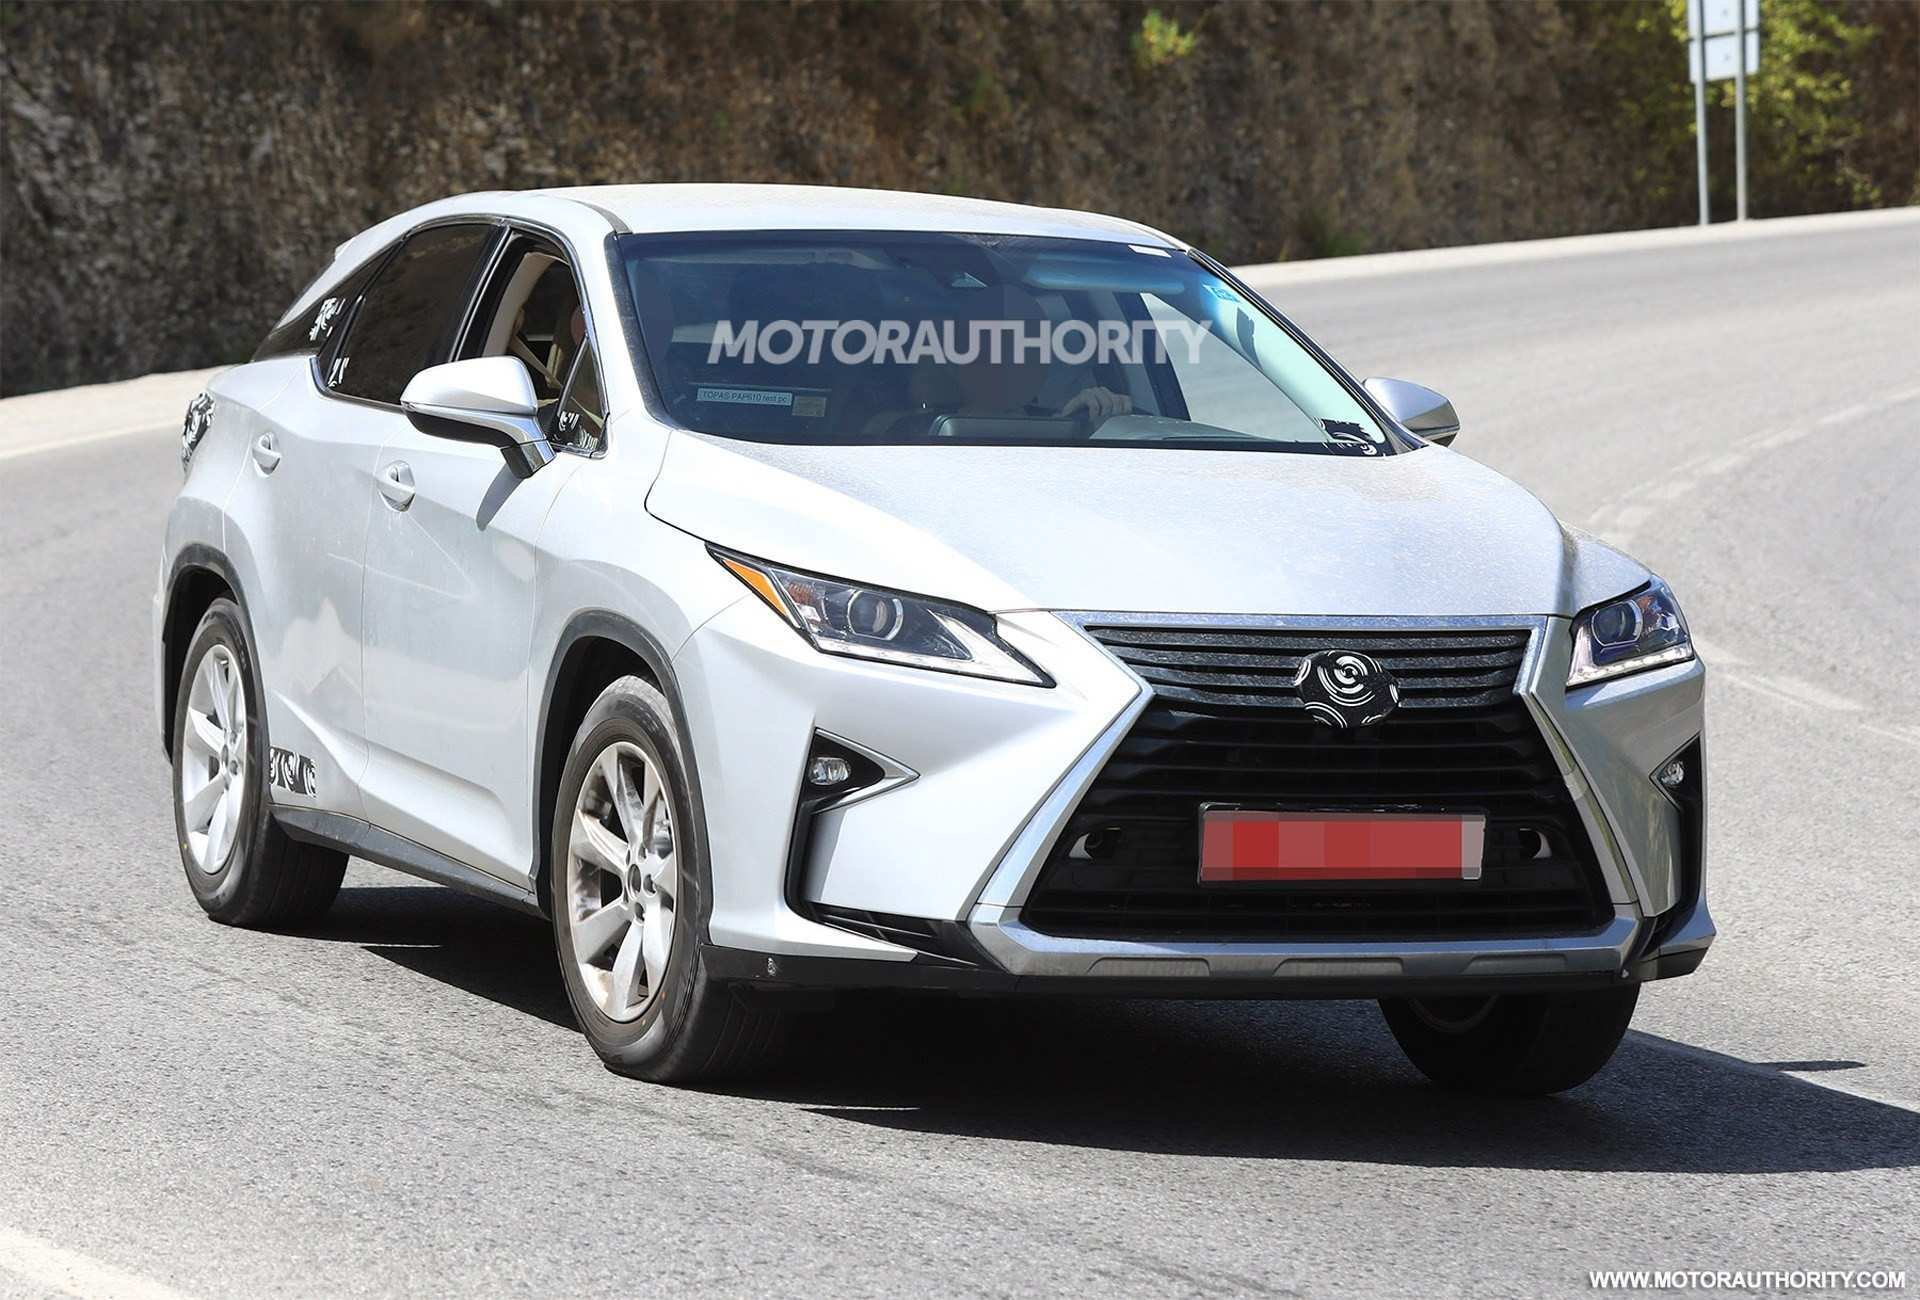 62 Great The 2019 Lexus Rx 350 Release Date Price And Release Date Specs with The 2019 Lexus Rx 350 Release Date Price And Release Date